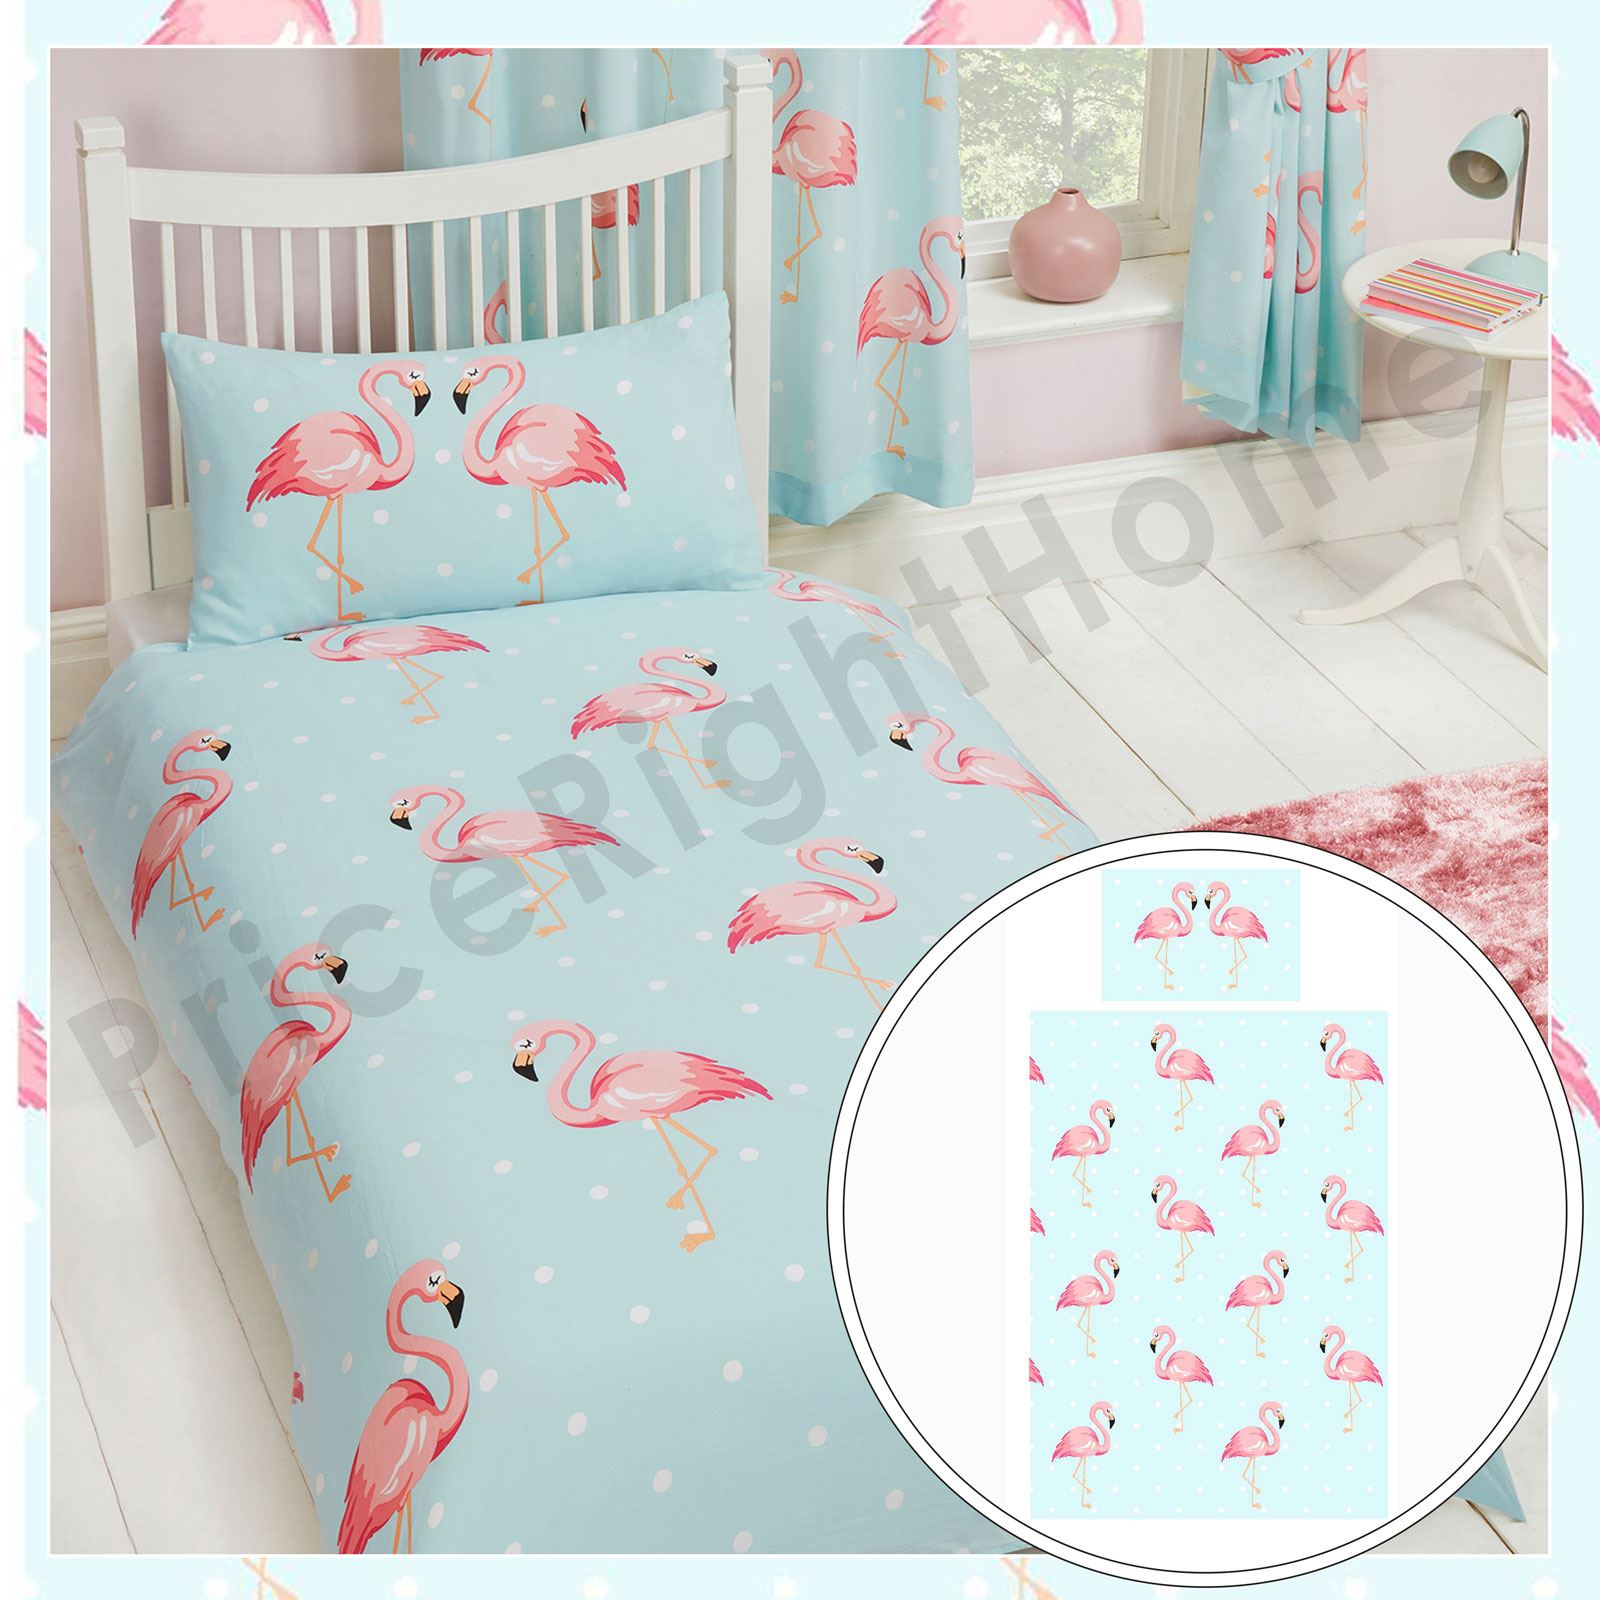 fifi flamant rose set housse de couette simple enfants filles literie neuf ebay. Black Bedroom Furniture Sets. Home Design Ideas